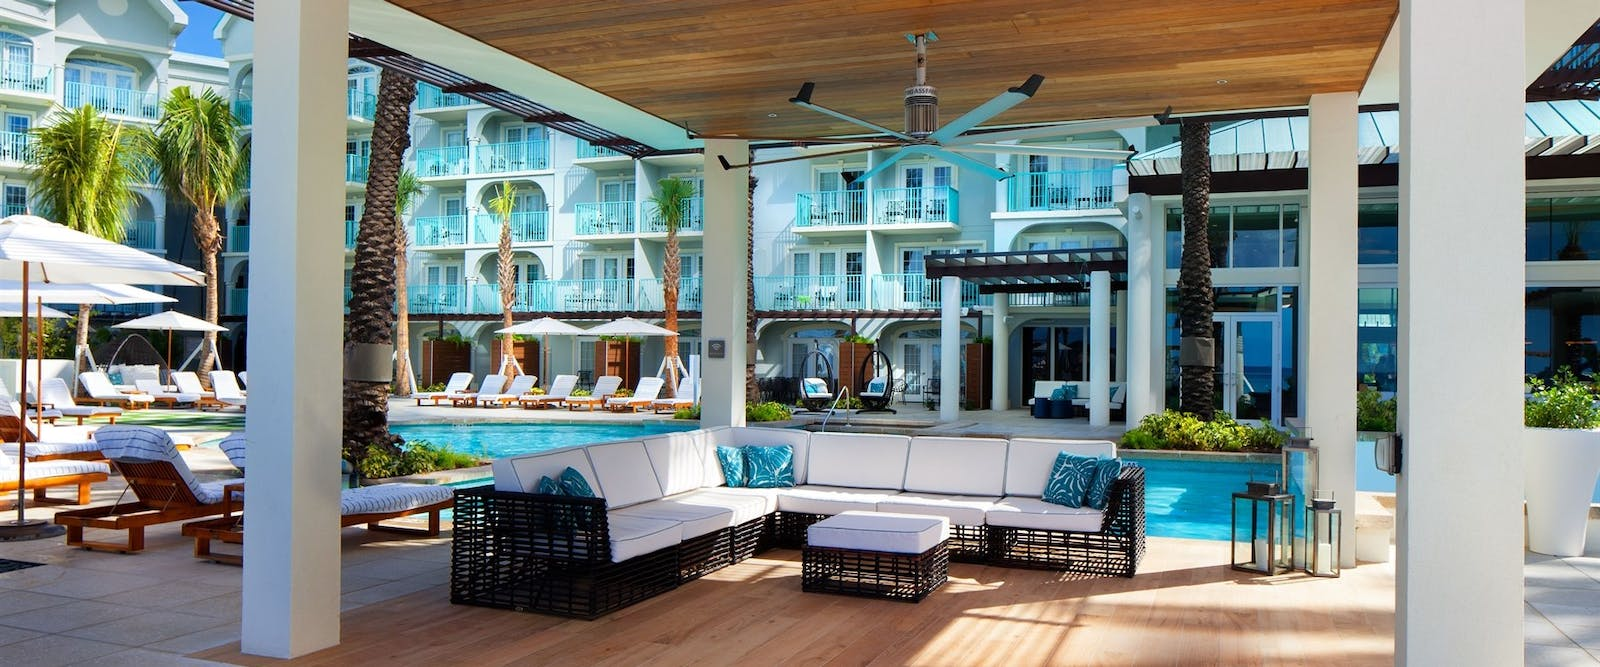 Pool Side Deck at The Westin Grand Cayman Seven Mile Beach Resort & Spa, Cayman Islands